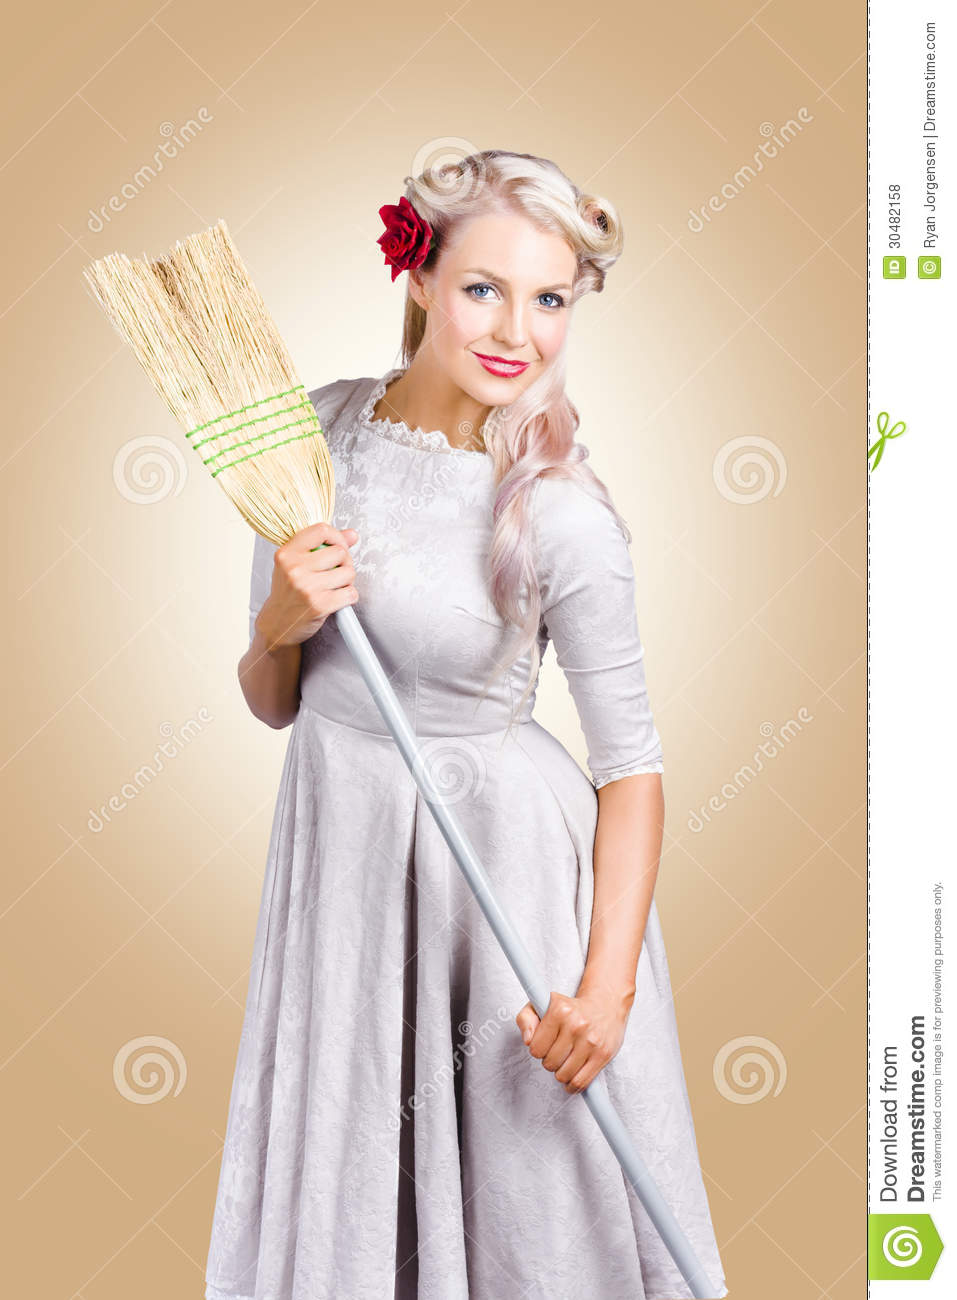 Old Fashion Woman Spring Cleaning With Broom Royalty Free